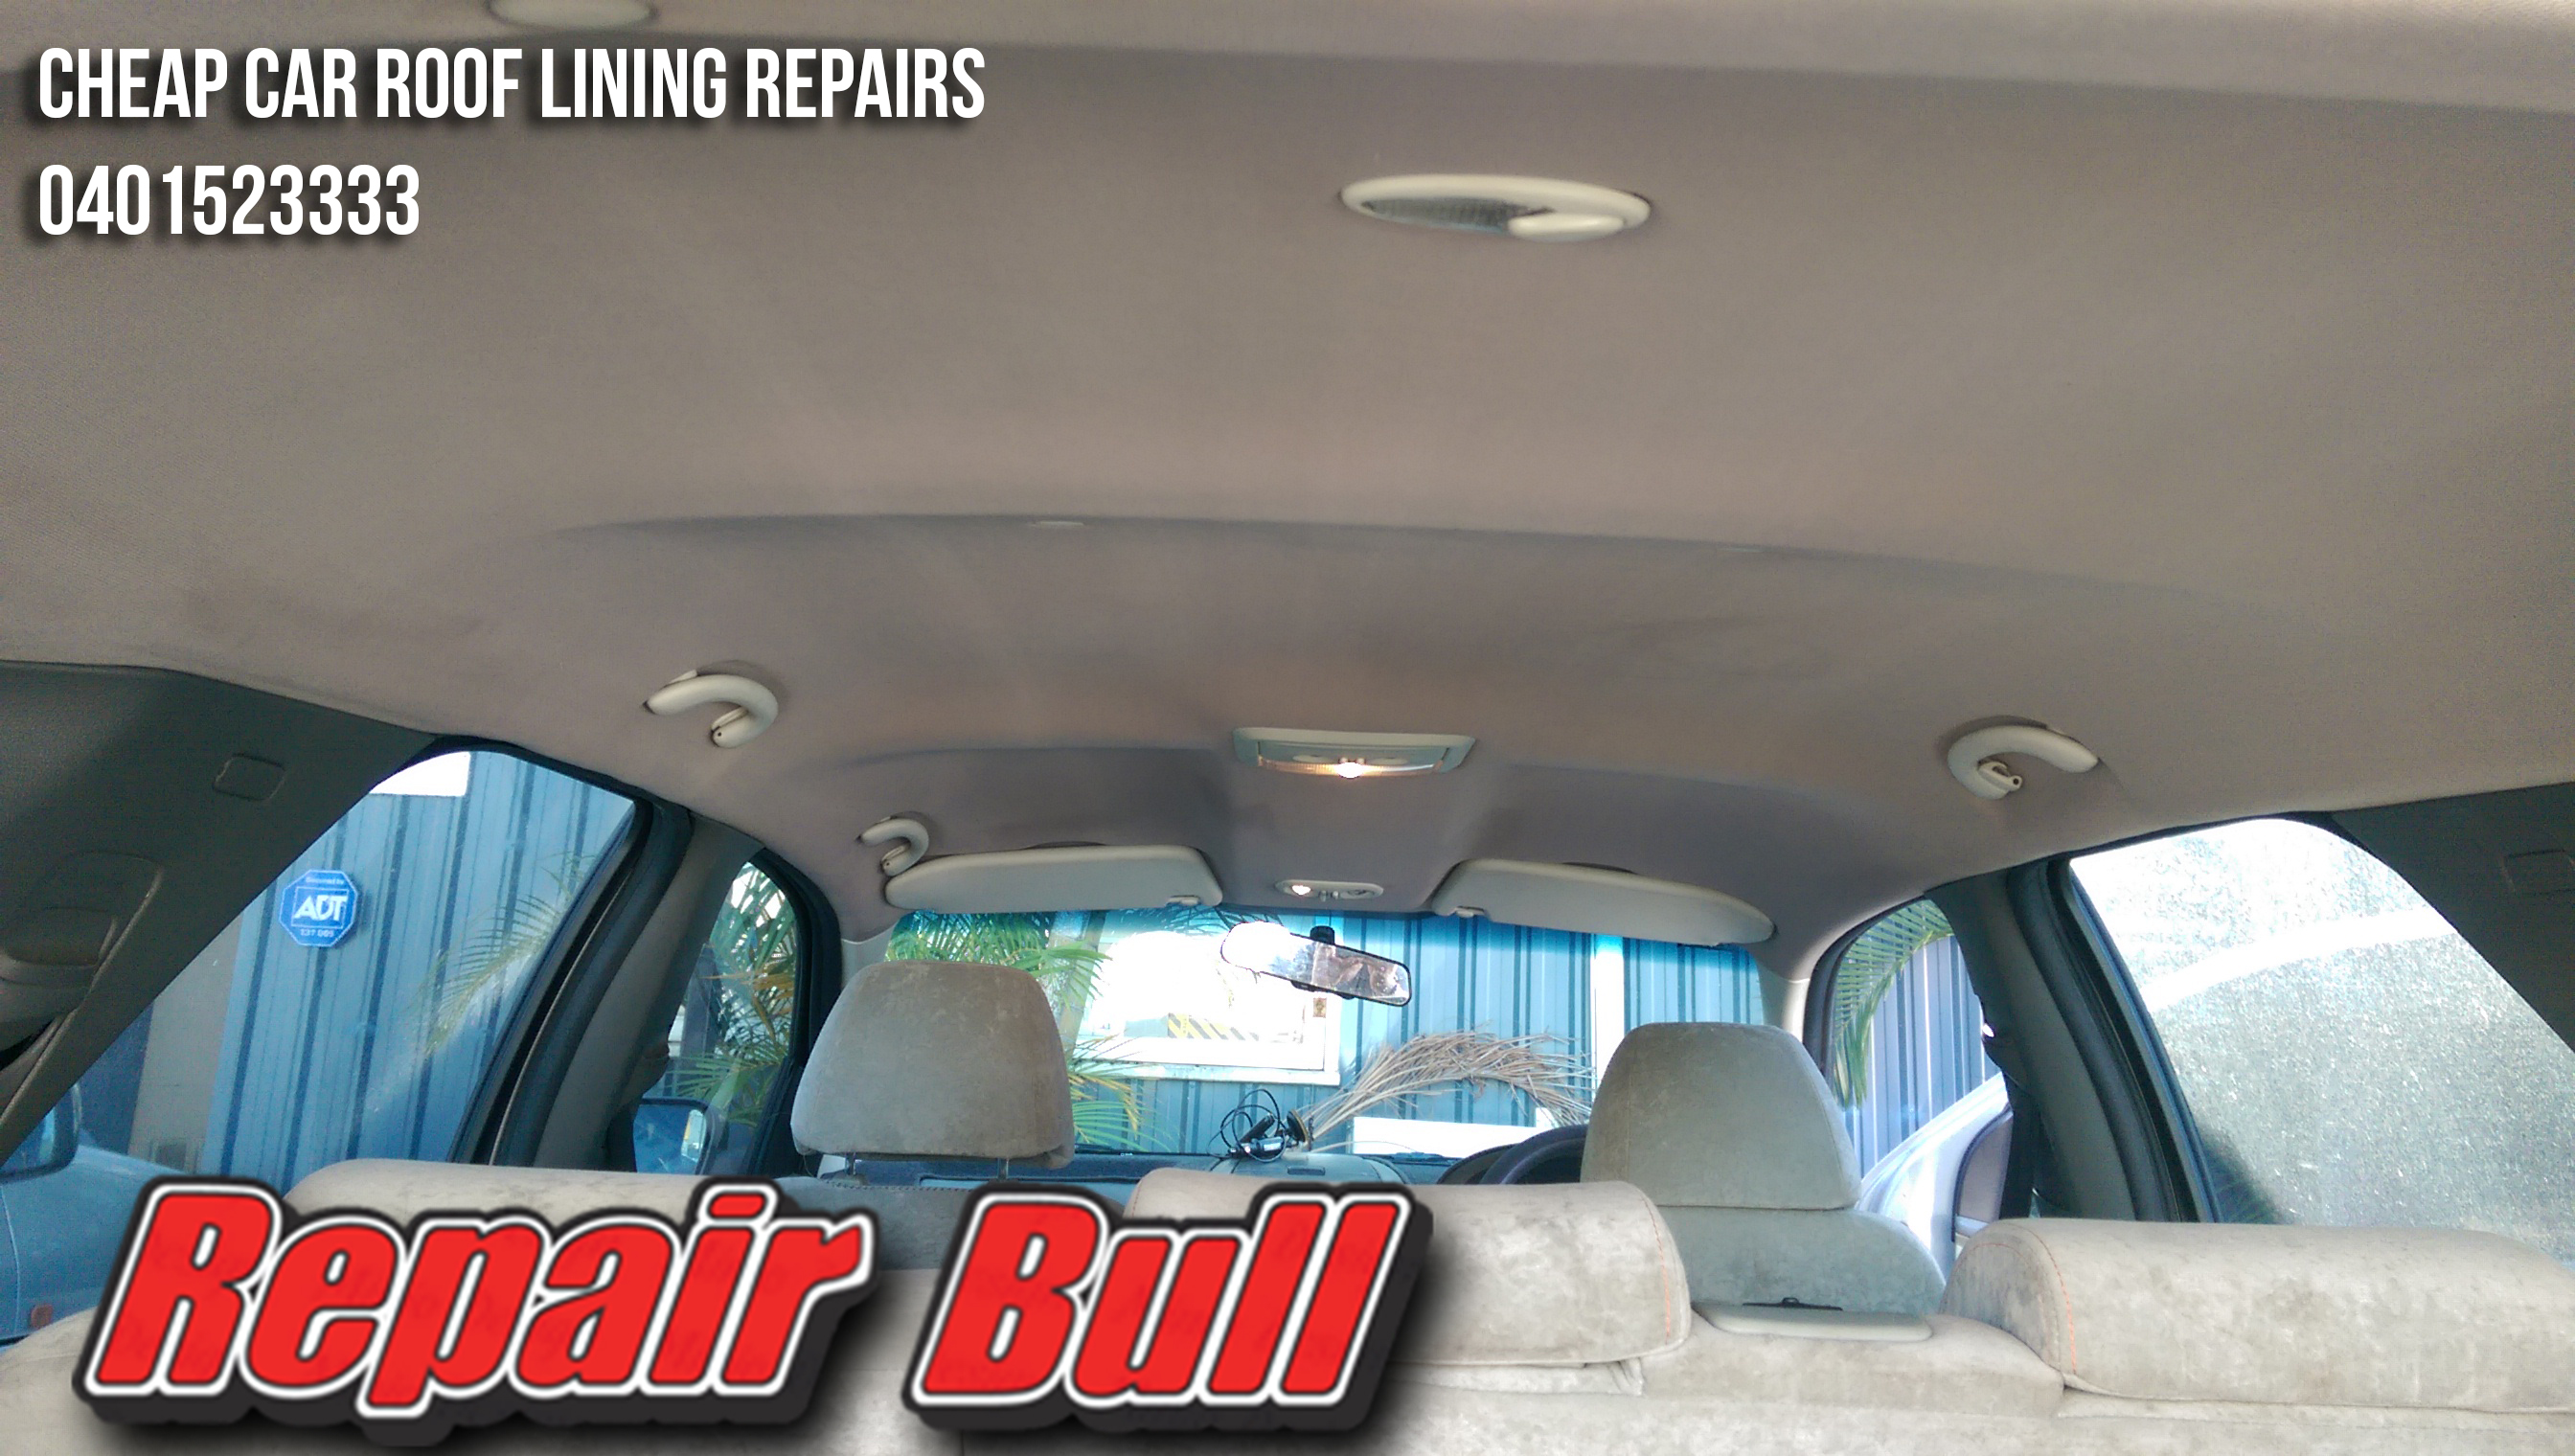 Mobile Car Roof Lining Technicians Wanted Set Your Own Hours Make Good Money